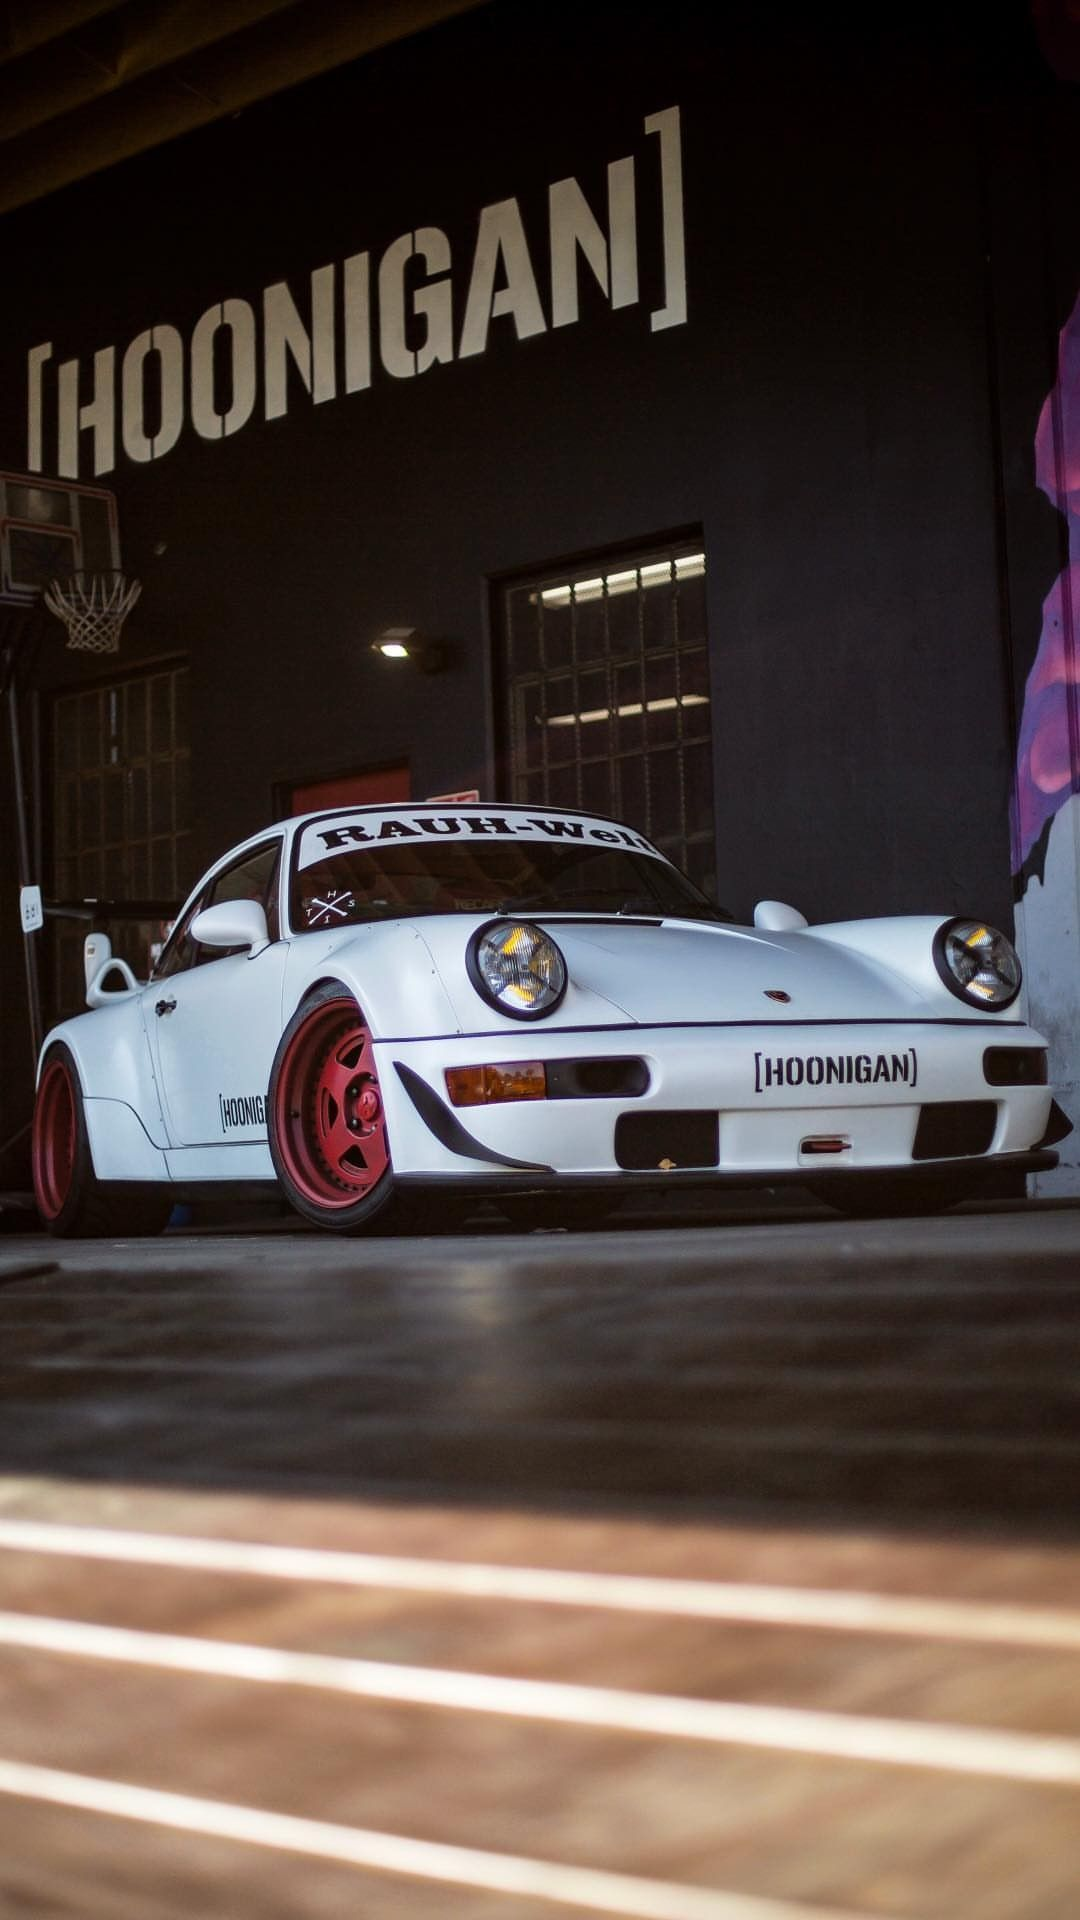 Scottos RWB Street racing cars Cars Car wallpapers 1080x1920